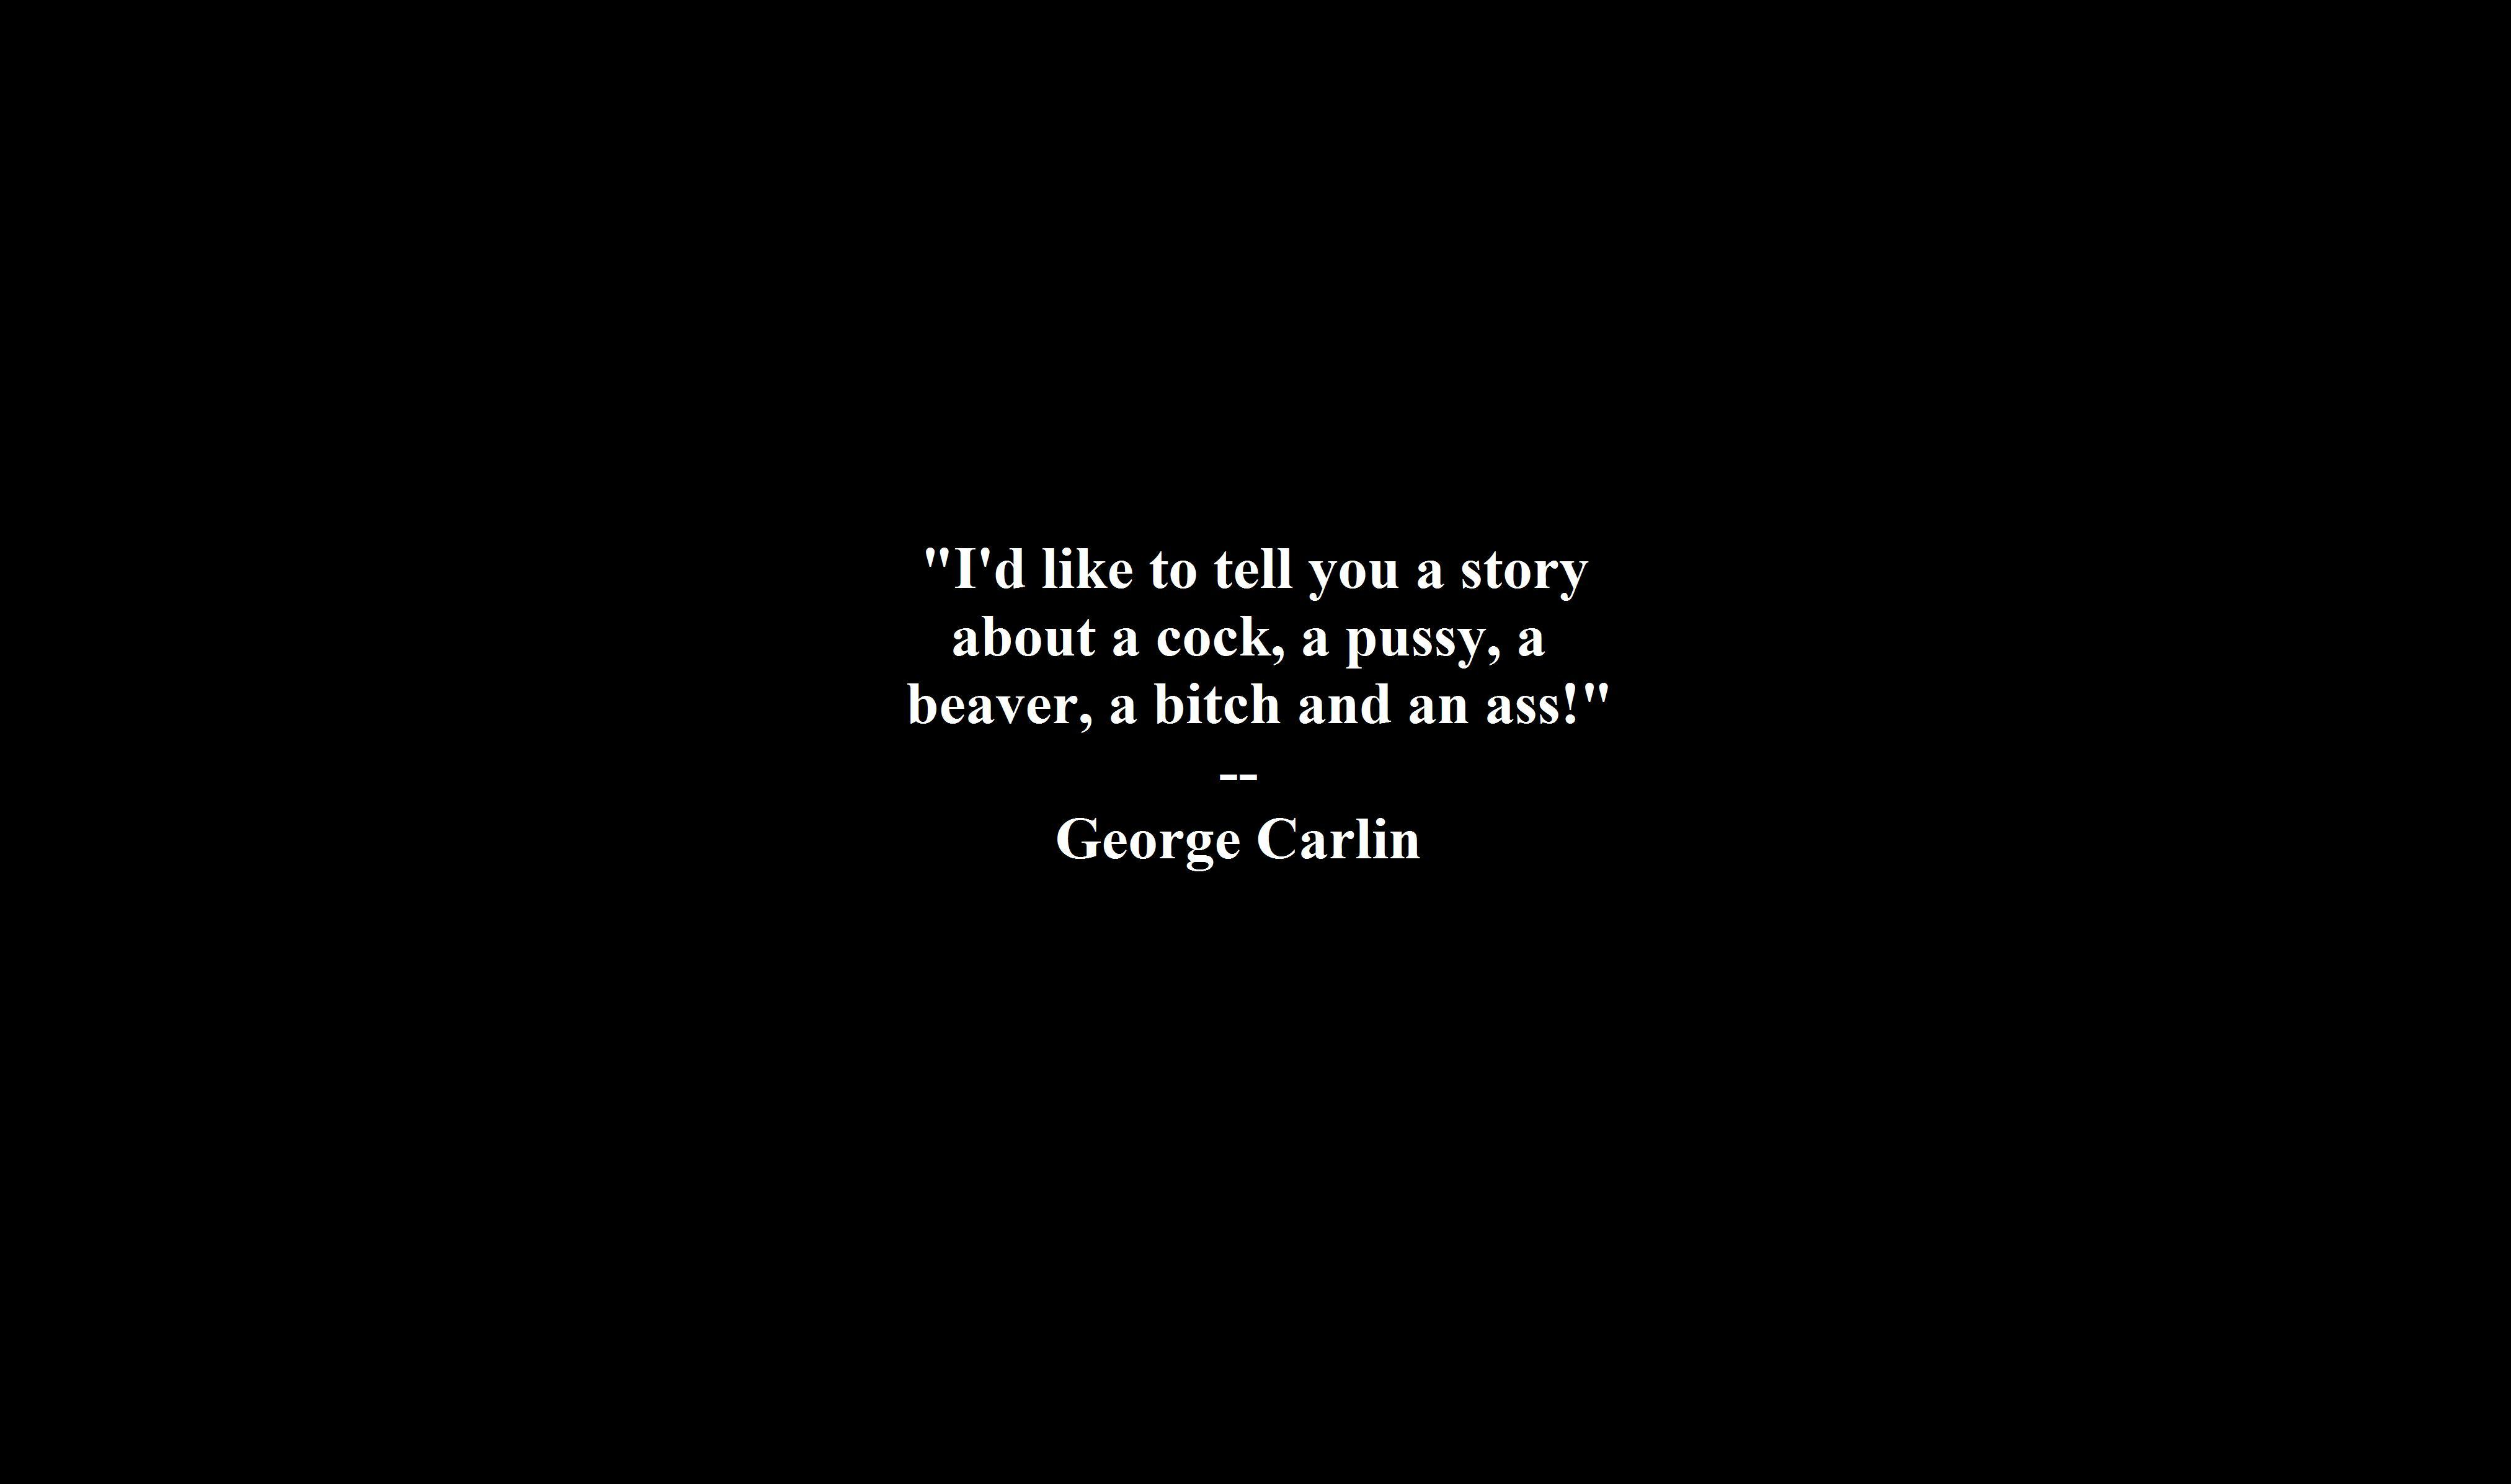 Quotes george carlin black HD Wallpaper